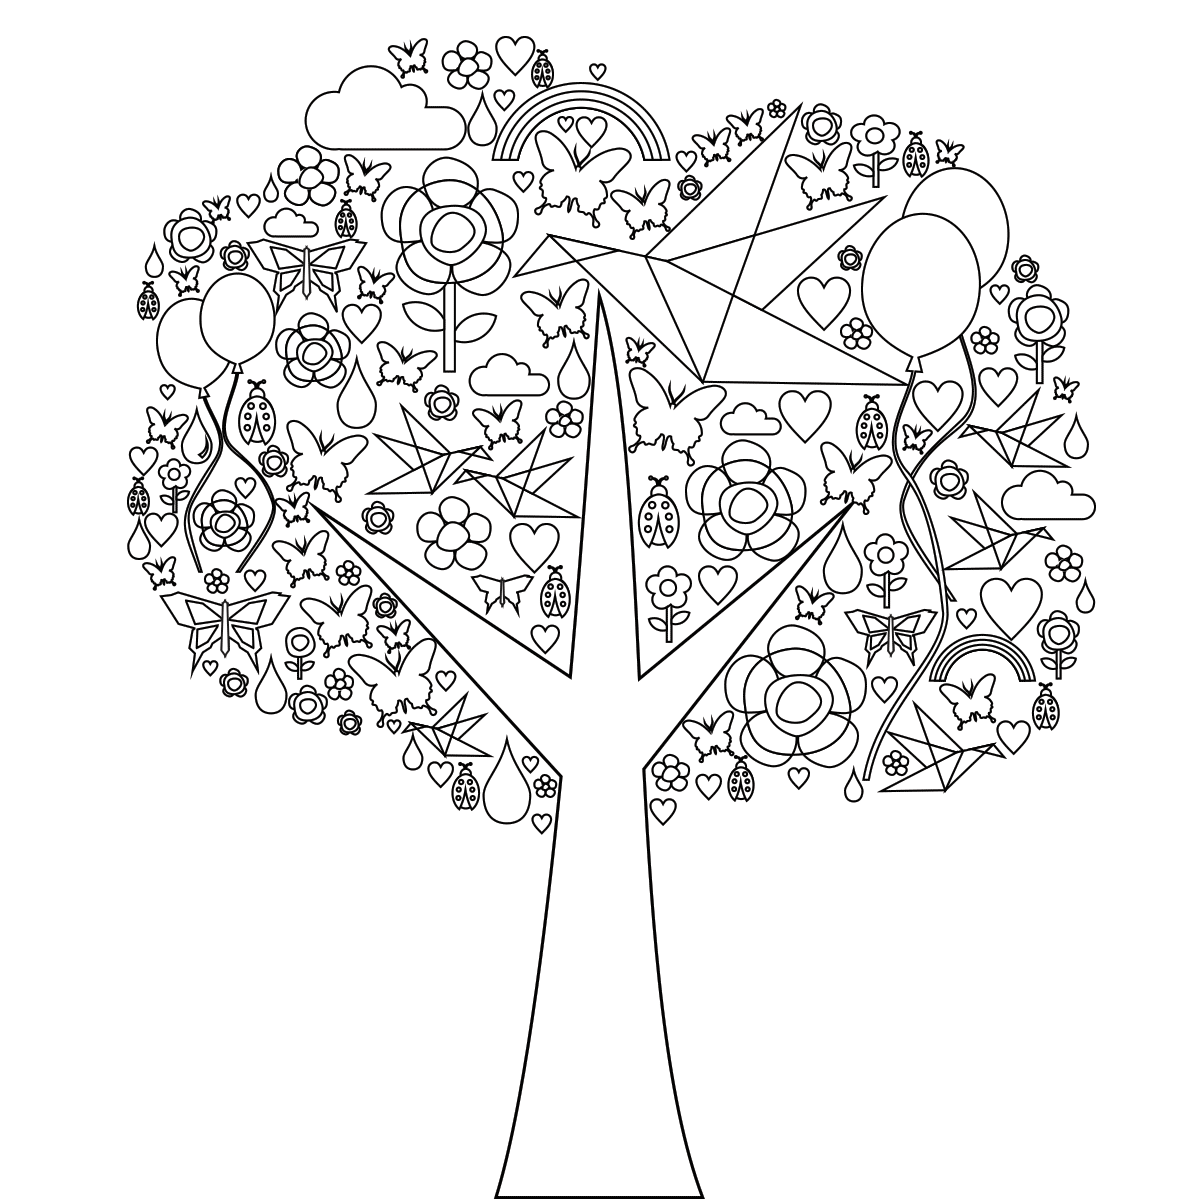 tree of life coloring tree of life coloring page art projects for kids of coloring tree life